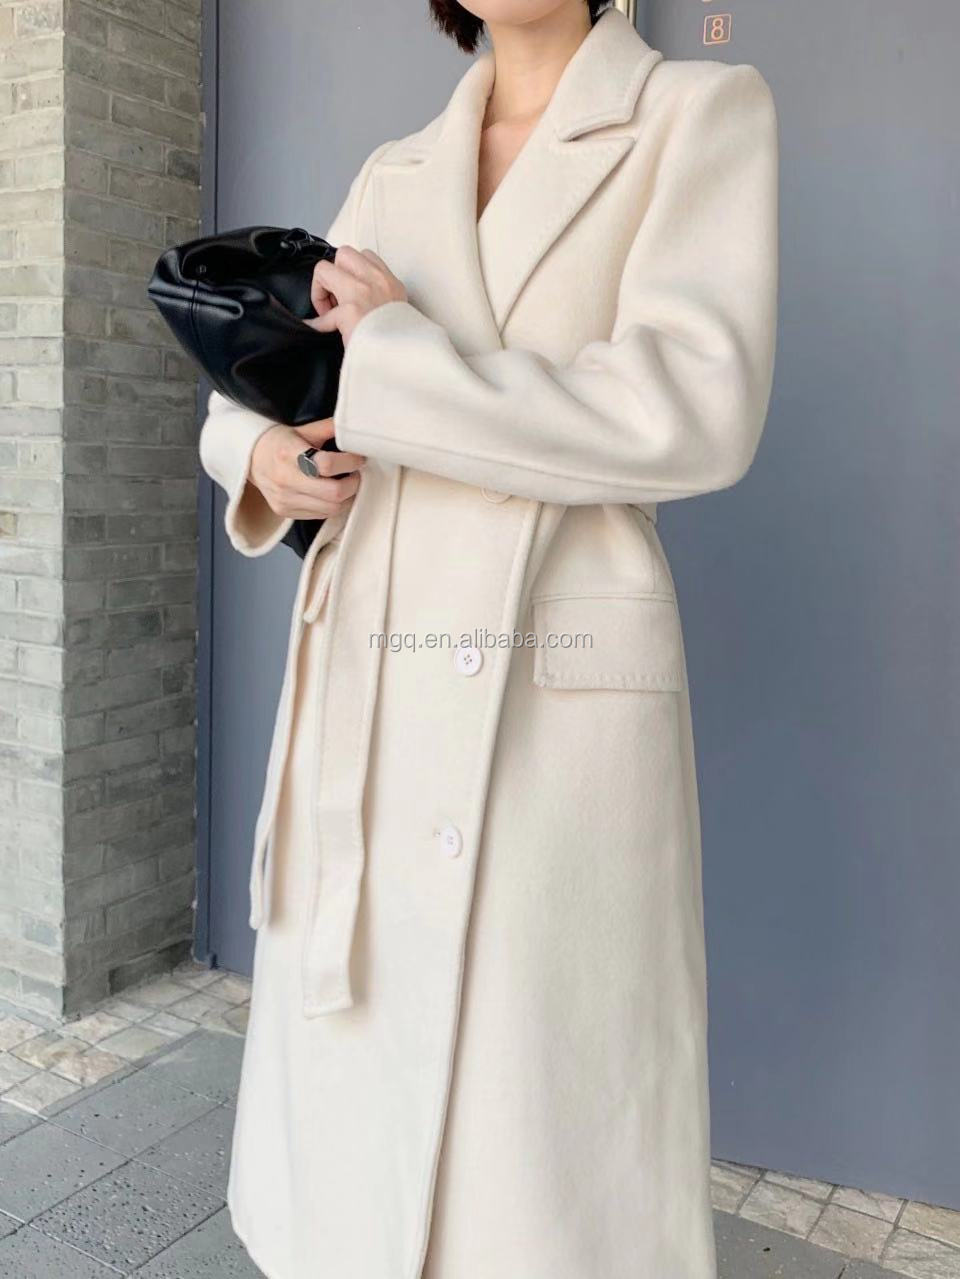 Top quality Korean design handsewn anti-pilling double side womens long wool coat in winter